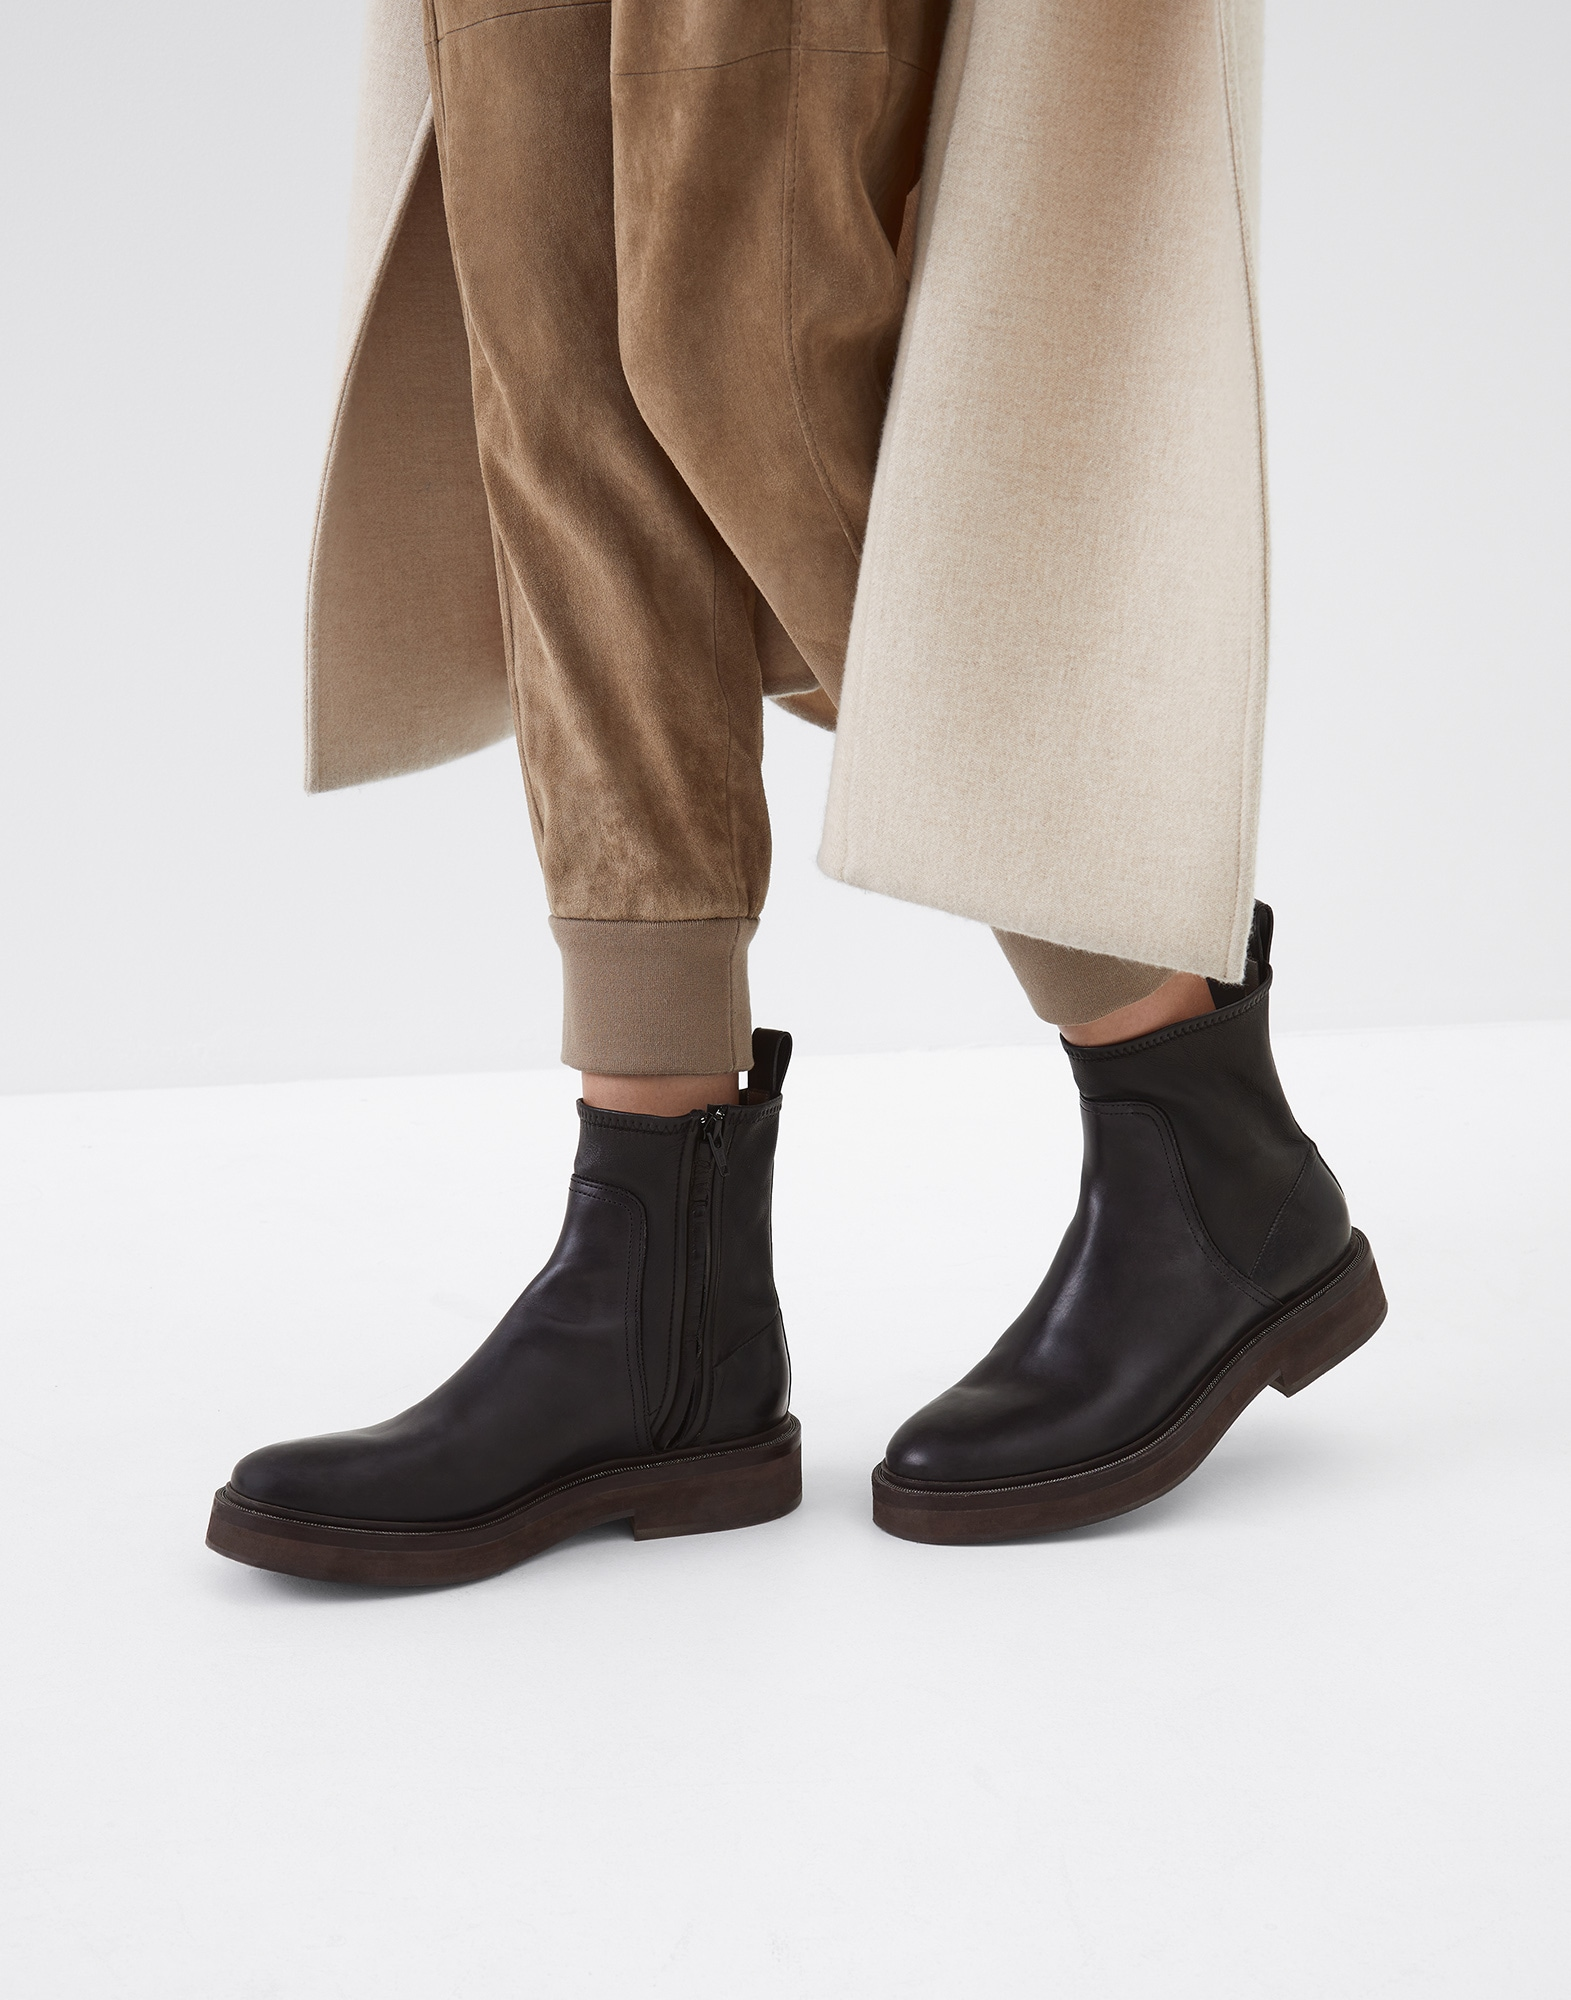 High-Boots Black Woman 4 - Brunello Cucinelli